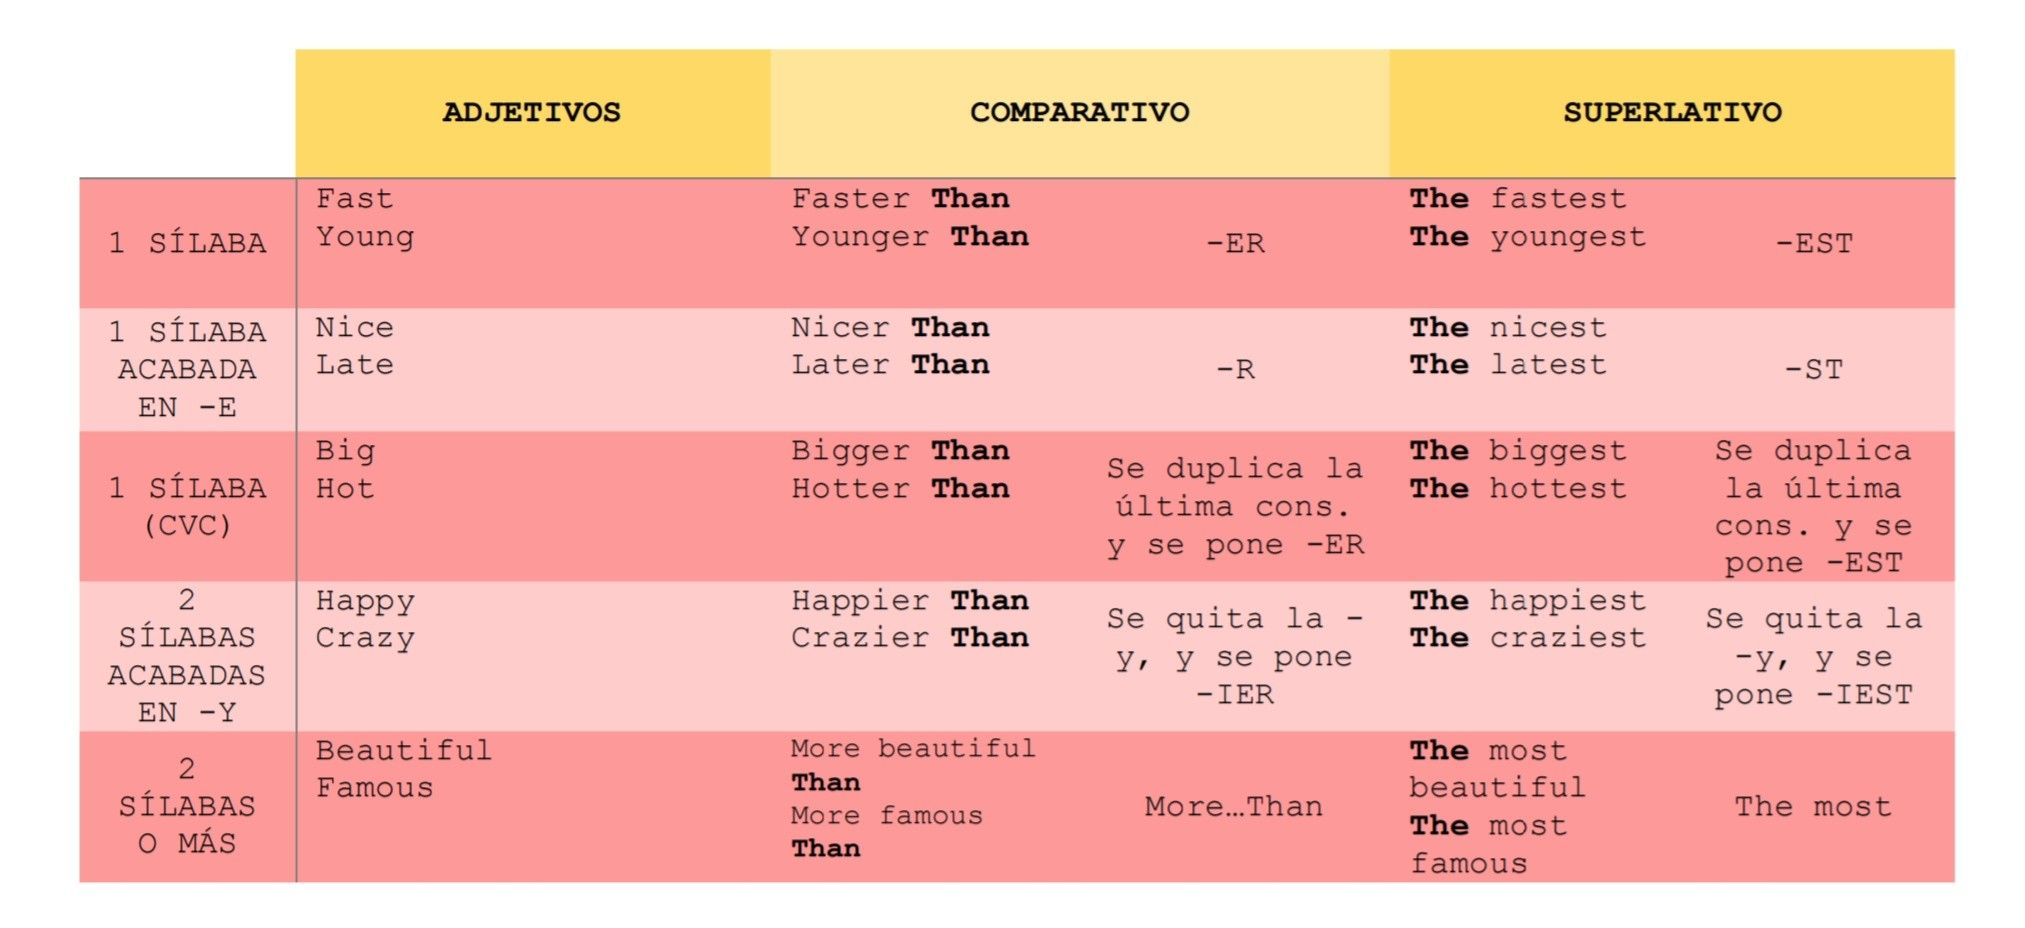 Comparativo Y Superlativo En Inglés Comparativos En Ingles Comparativos Y Superlativos Ingles